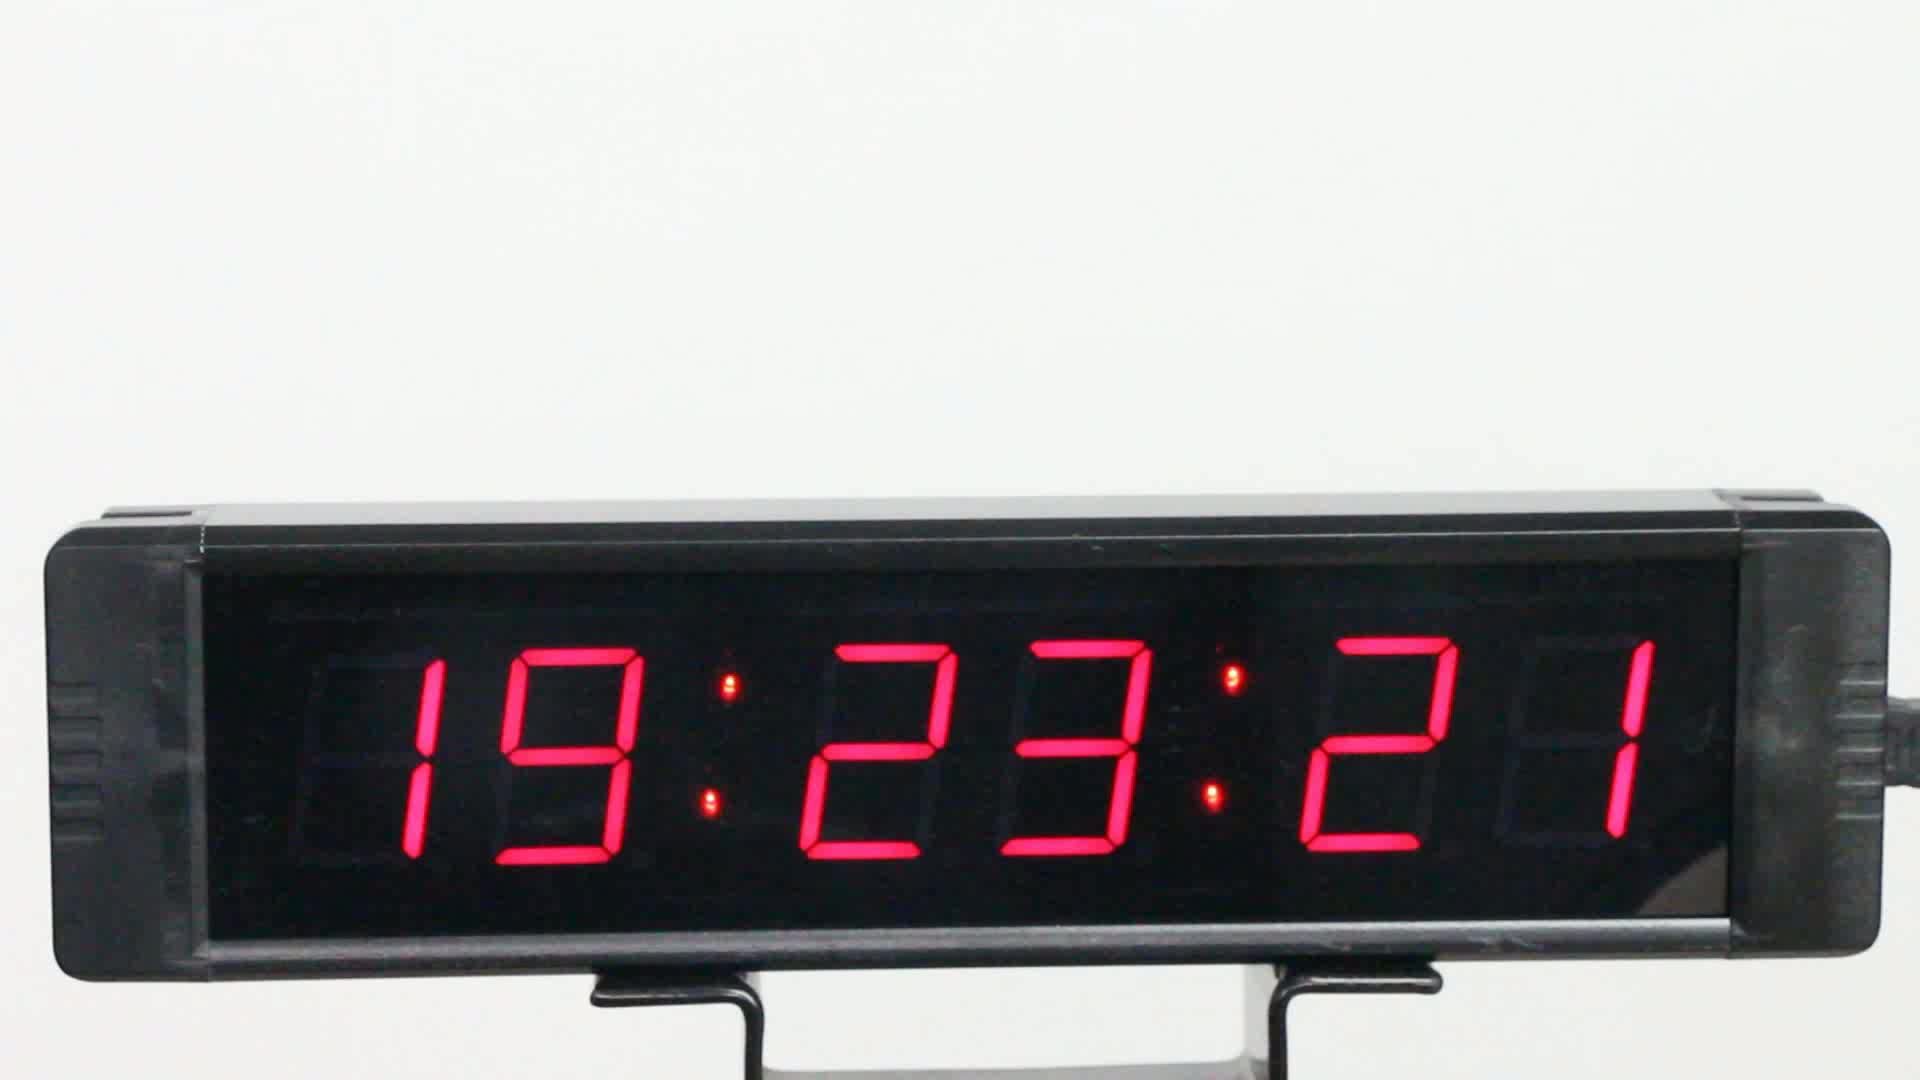 Ganxin GI6T-1W 6 digitals 1 inch minitype led clock